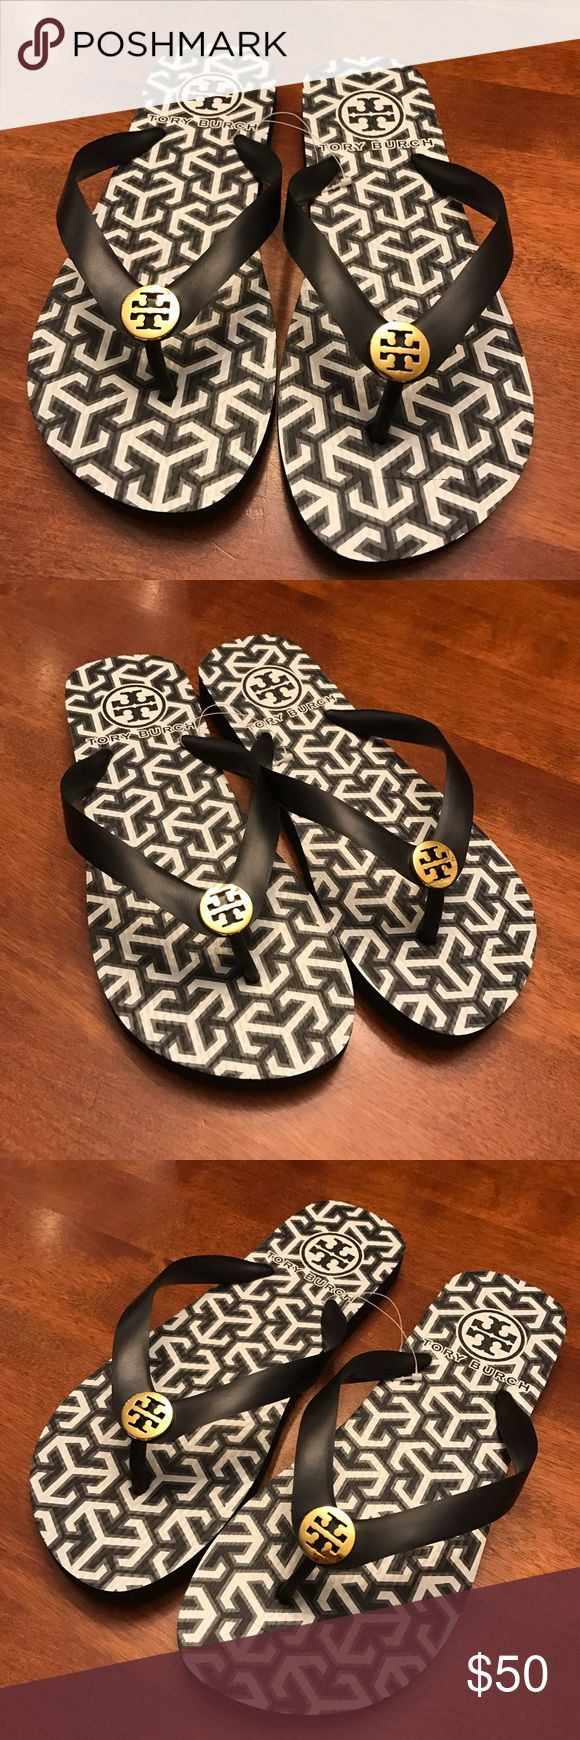 NWOT TORY BURCH FLIP FLOPS NWOT TORY BURCH FLIP FLOPS! Black. Never worn. Size 7 true to size! Tory Burch Shoes Sandals